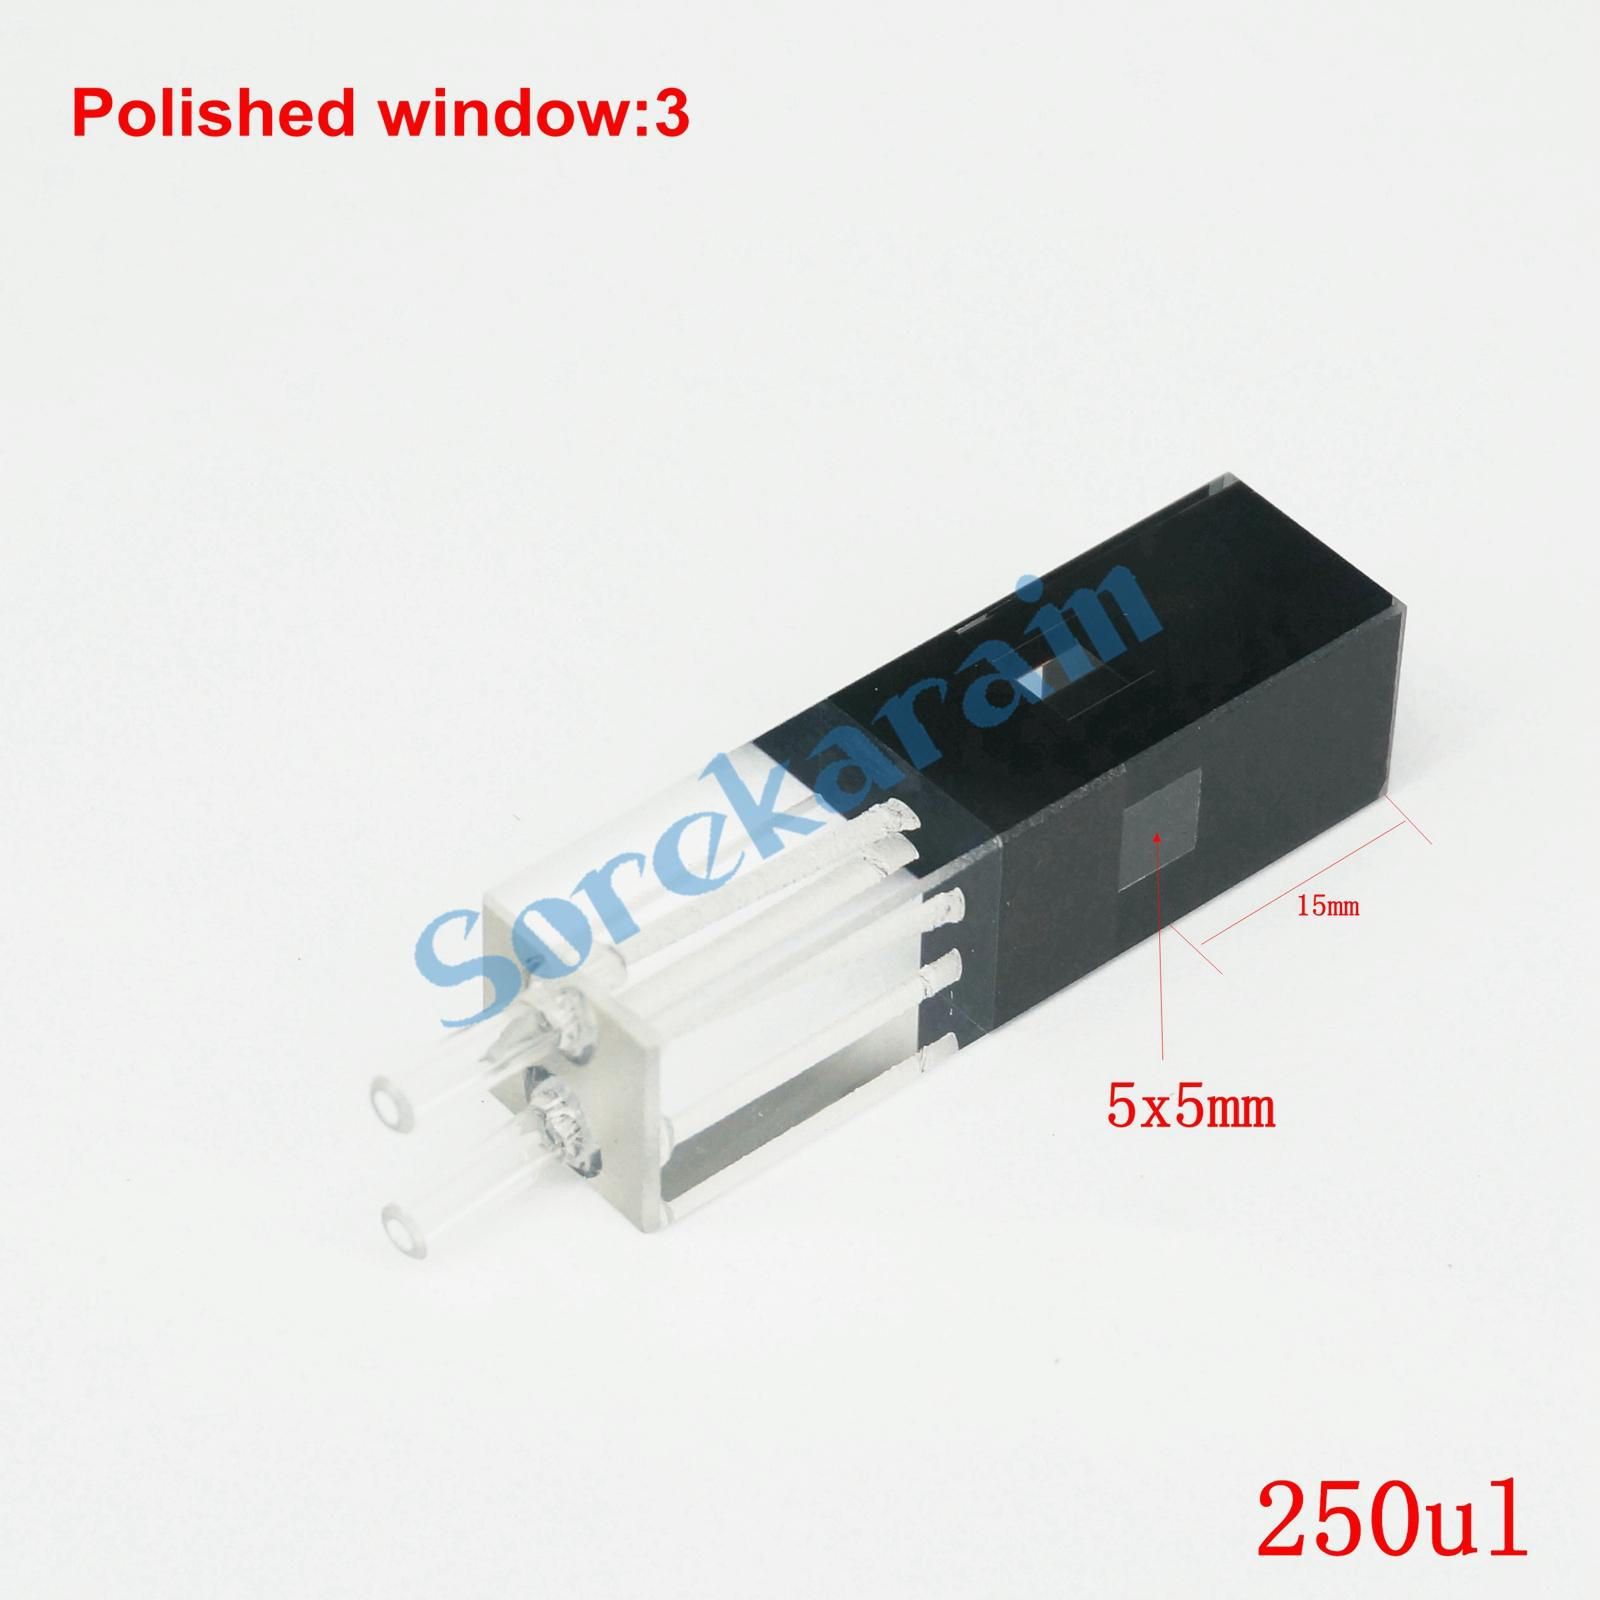 250ul 10mm Path Length JGS1 Quartz Fluorescence Flow Cuvette With Glass Tube250ul 10mm Path Length JGS1 Quartz Fluorescence Flow Cuvette With Glass Tube